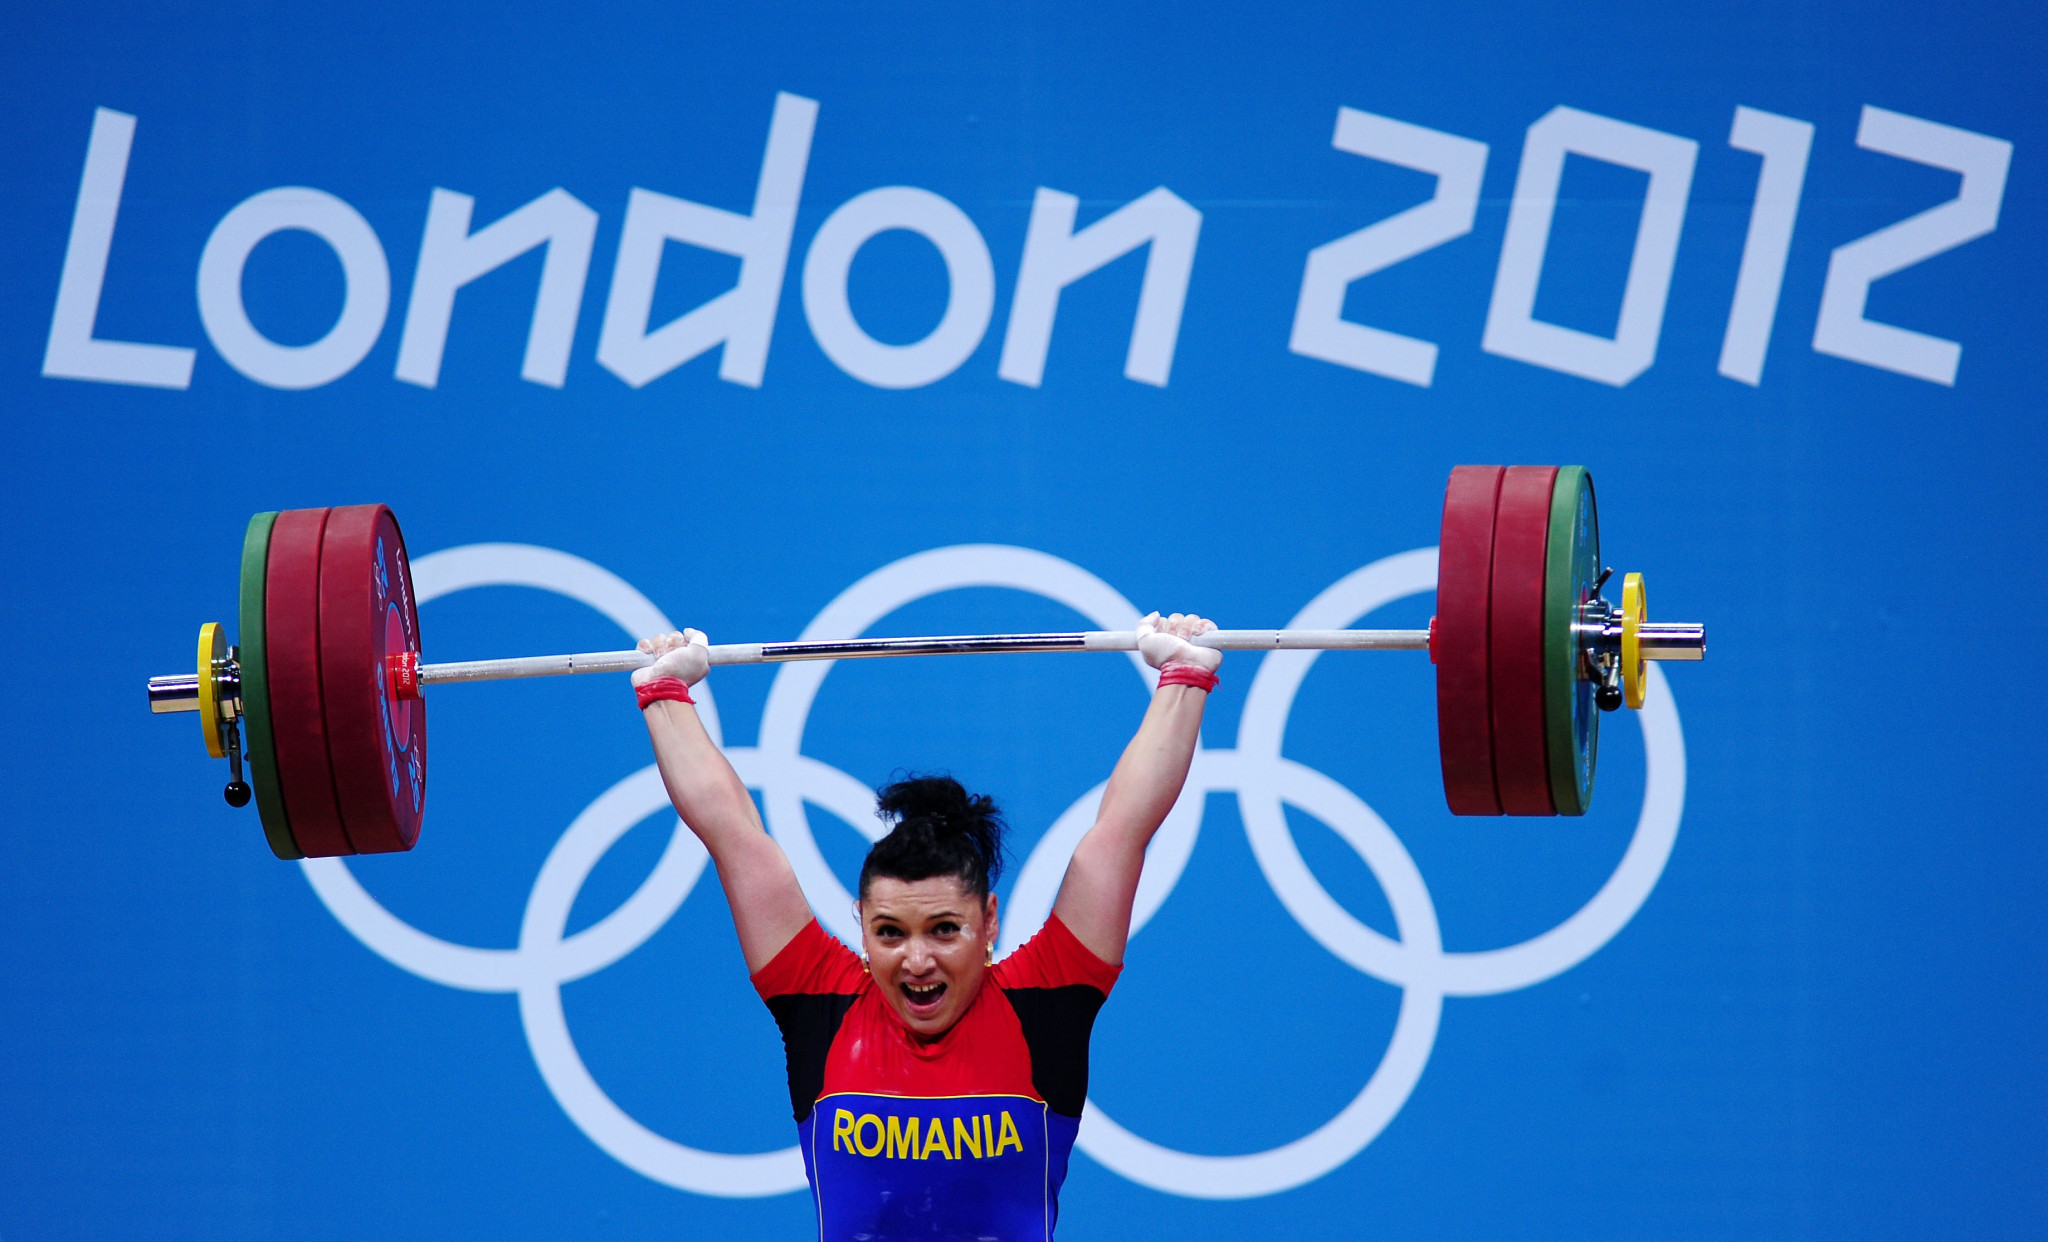 Roxana Cocoș won a medal at London 2012, only to be disqualified along with the entire Romanian weightlifting team ©Getty Images